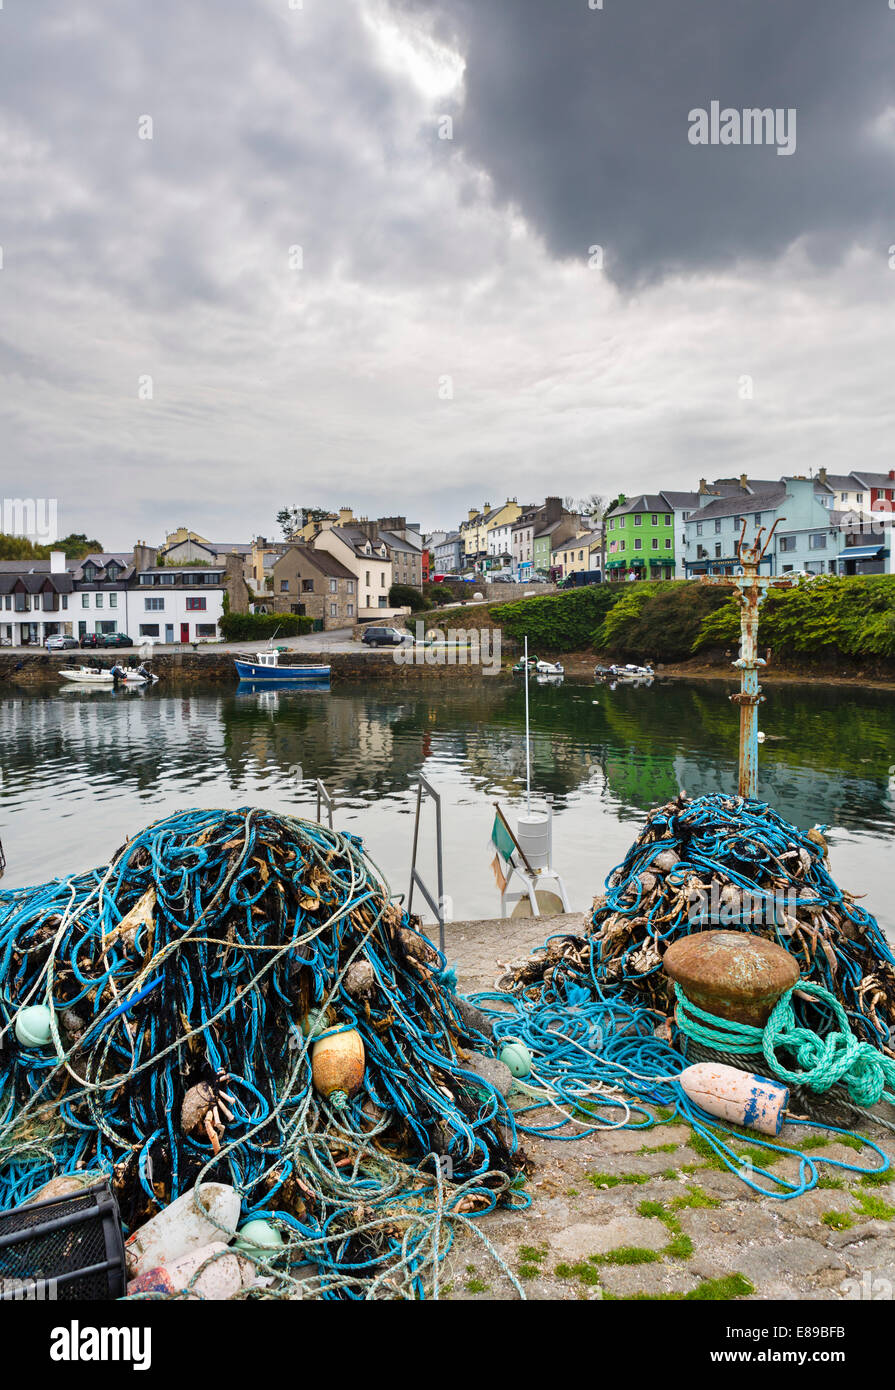 Crab nets on the quayside in Roundstone, Connemara, County Galway, Republic of Ireland - Stock Image